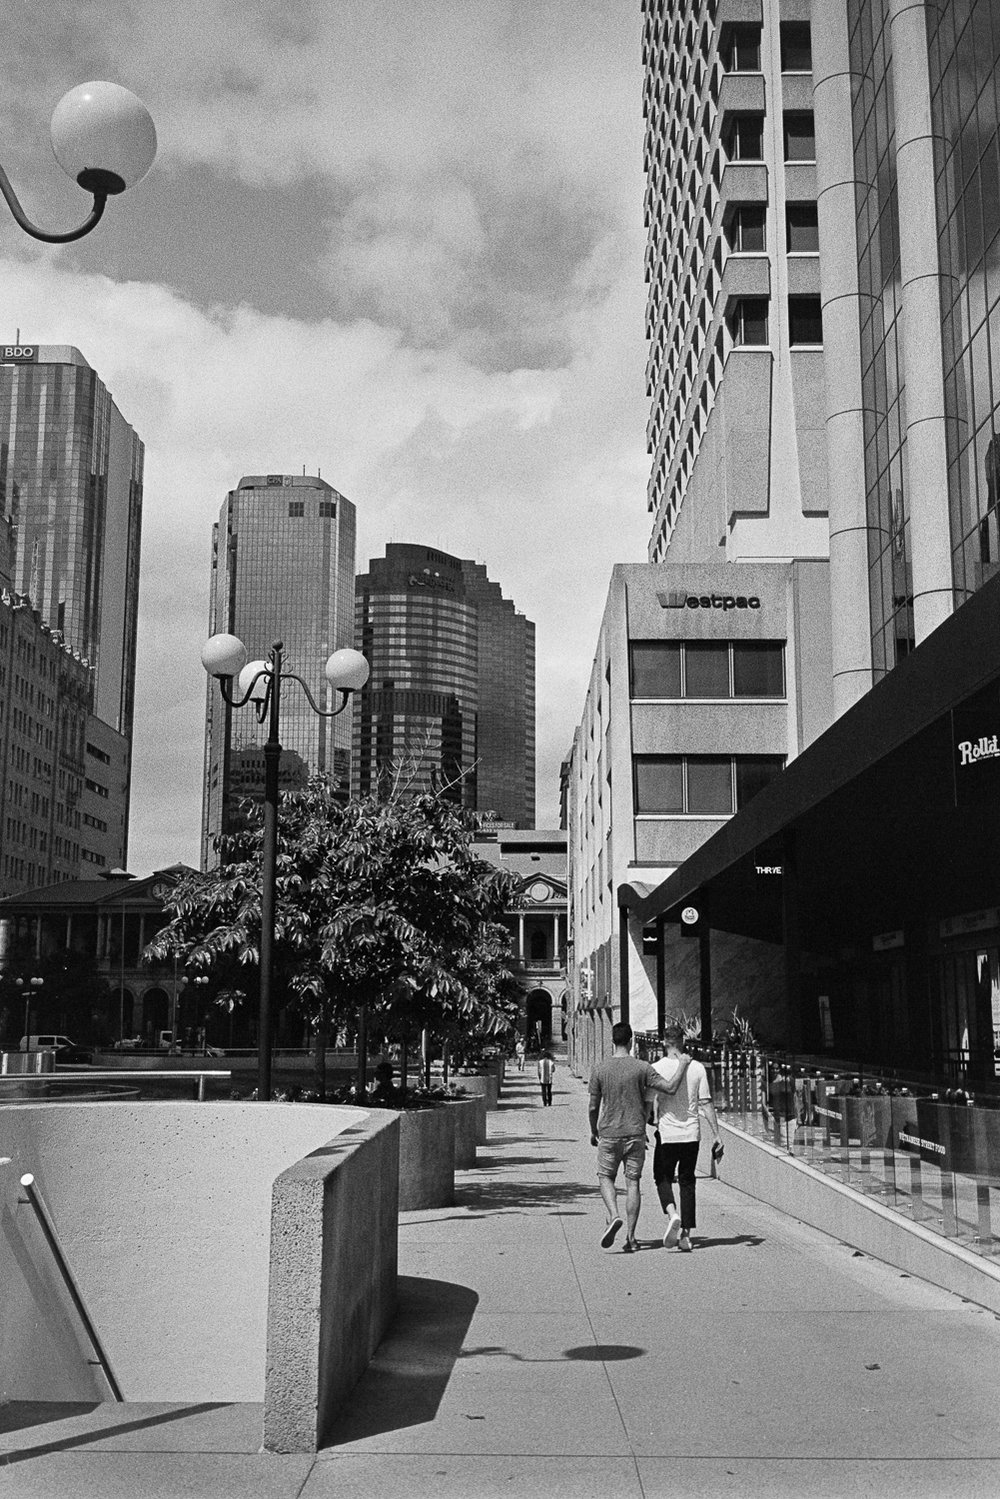 20170412 - Roll 128 - 025-Nick-Bedford,-Photographer-Black and White, Brisbane, Film, Kodak Tri-X 400, Leica M7, Rodinal, Street Photography, Voigtlander 35mm F1.7 Ultron Asph.jpg